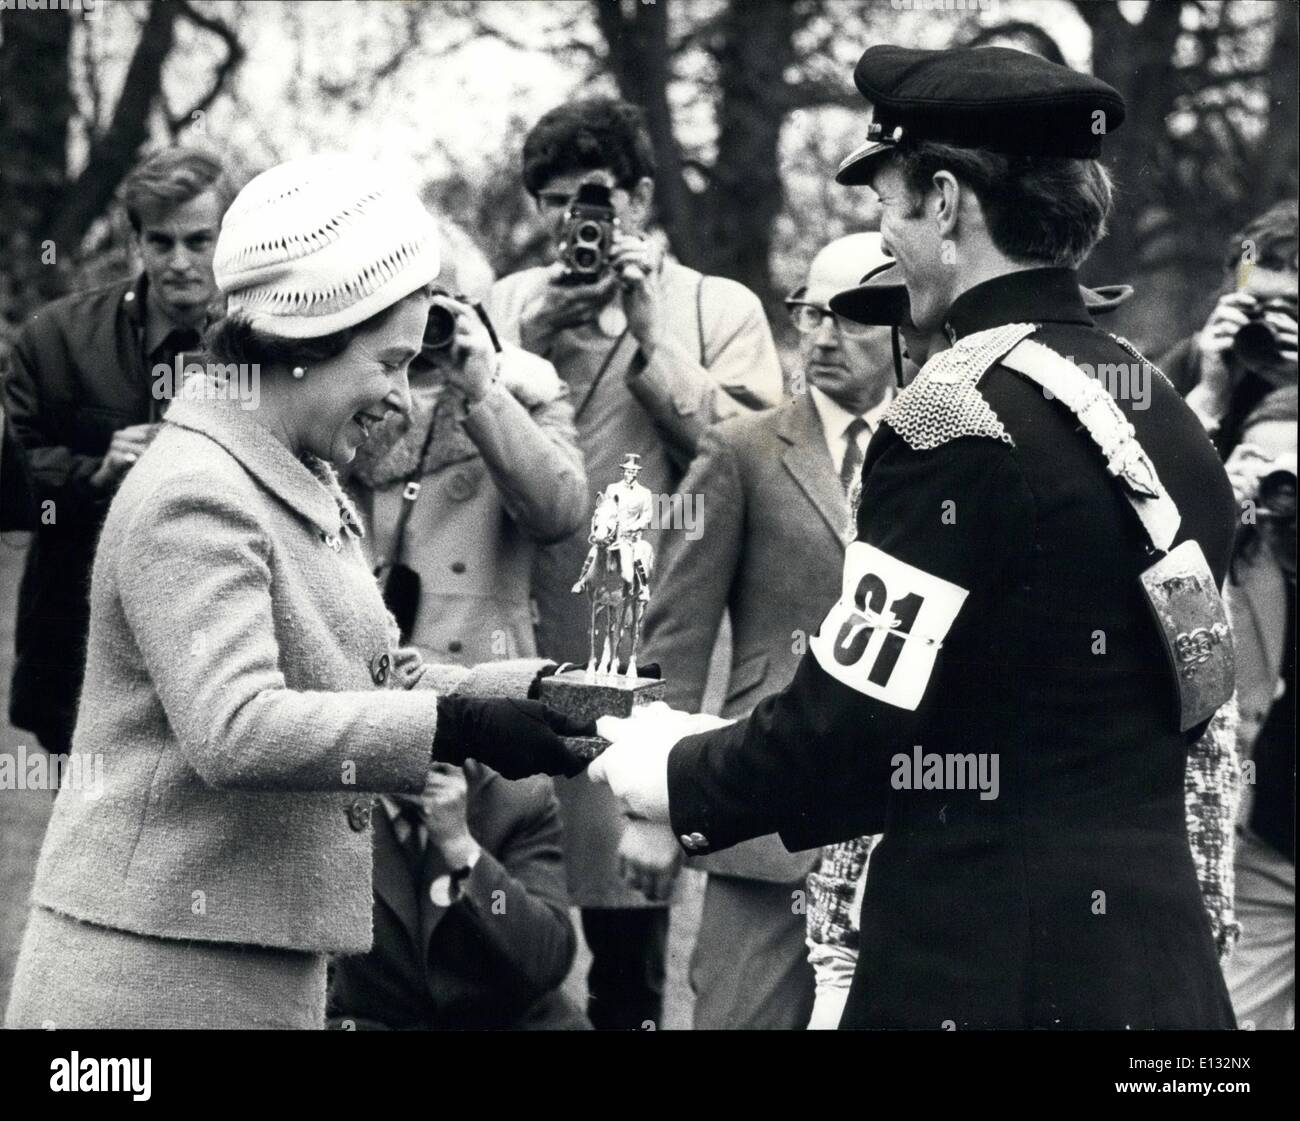 Feb. 26, 2012 - Her Majesty The Queen presents the winners trophy to Mark Phillips - her future son-in-law?? For Stock Photo